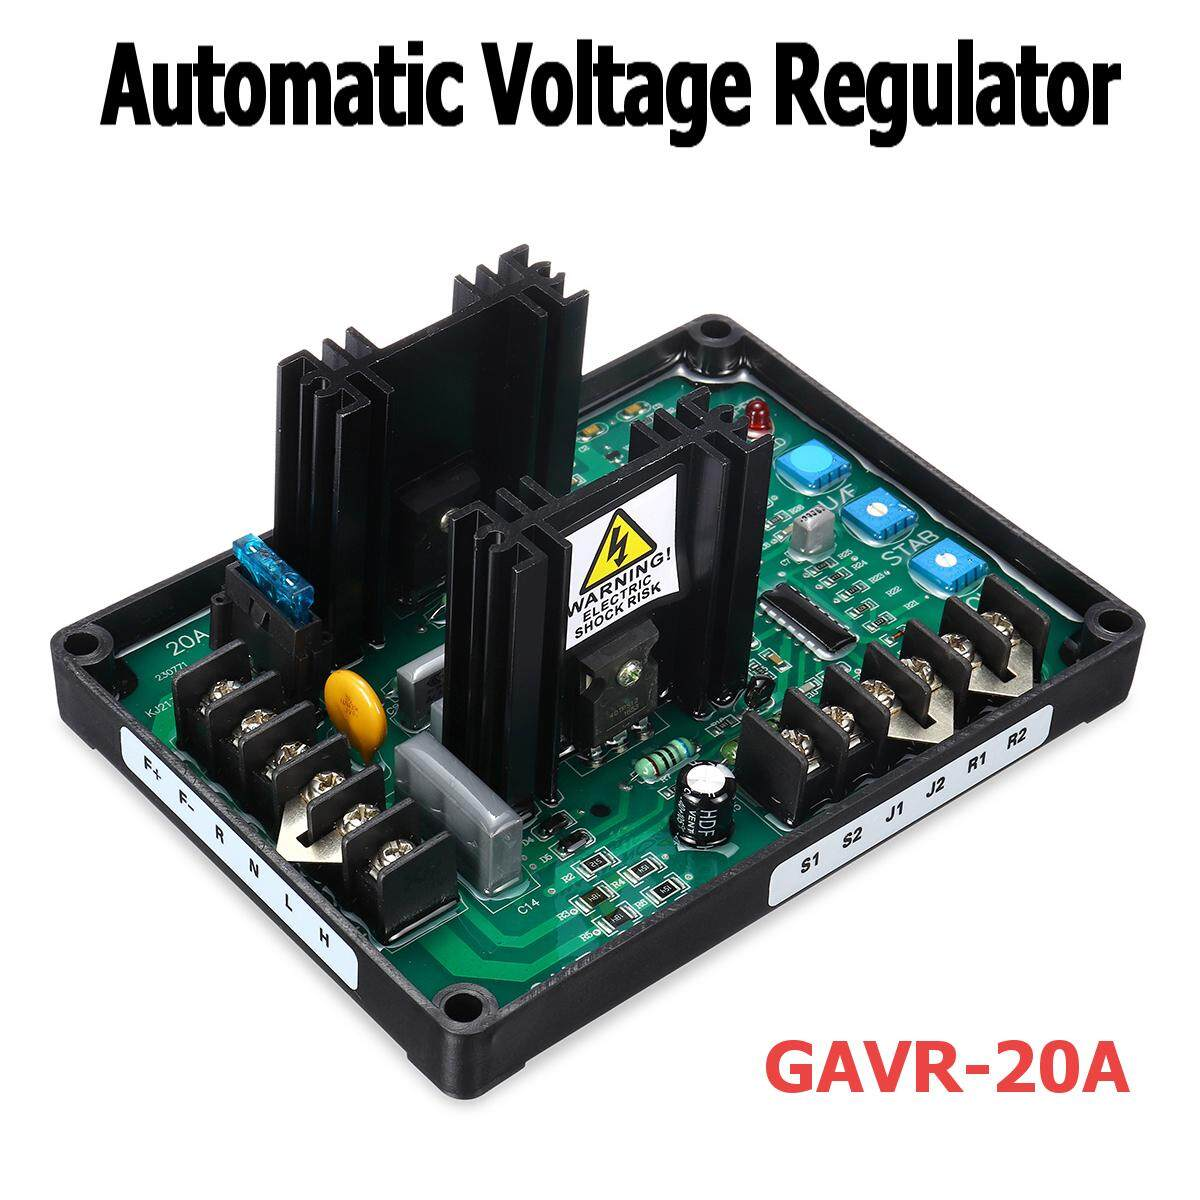 Buy Generic Avr Gavr 20a Automatic Voltage Regulator Generator Of Control And Regulation Its Input External Adjustment 7 With 1 K Ohm Watt Trimmer Unit Power Dissipation 8 Watts Maximum Thermal Drift 005 Per C Chage In Ambient